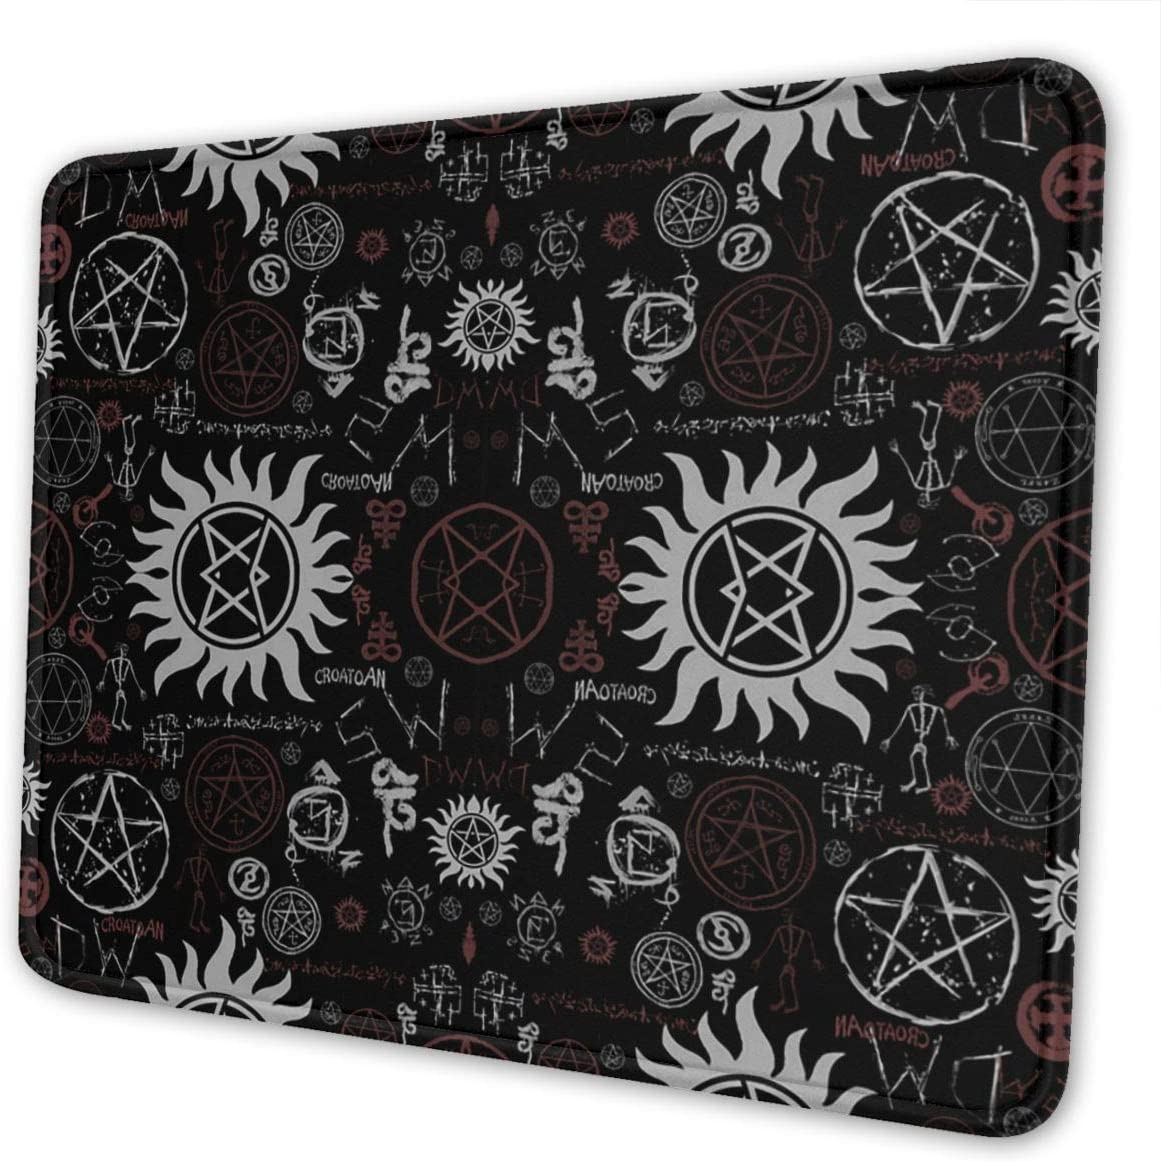 Mouse Pad Supernatural Symbols Black Gaming Mousepad with Stitched Edges Non-Slip Rubber Base for Computers Laptop Office & Home